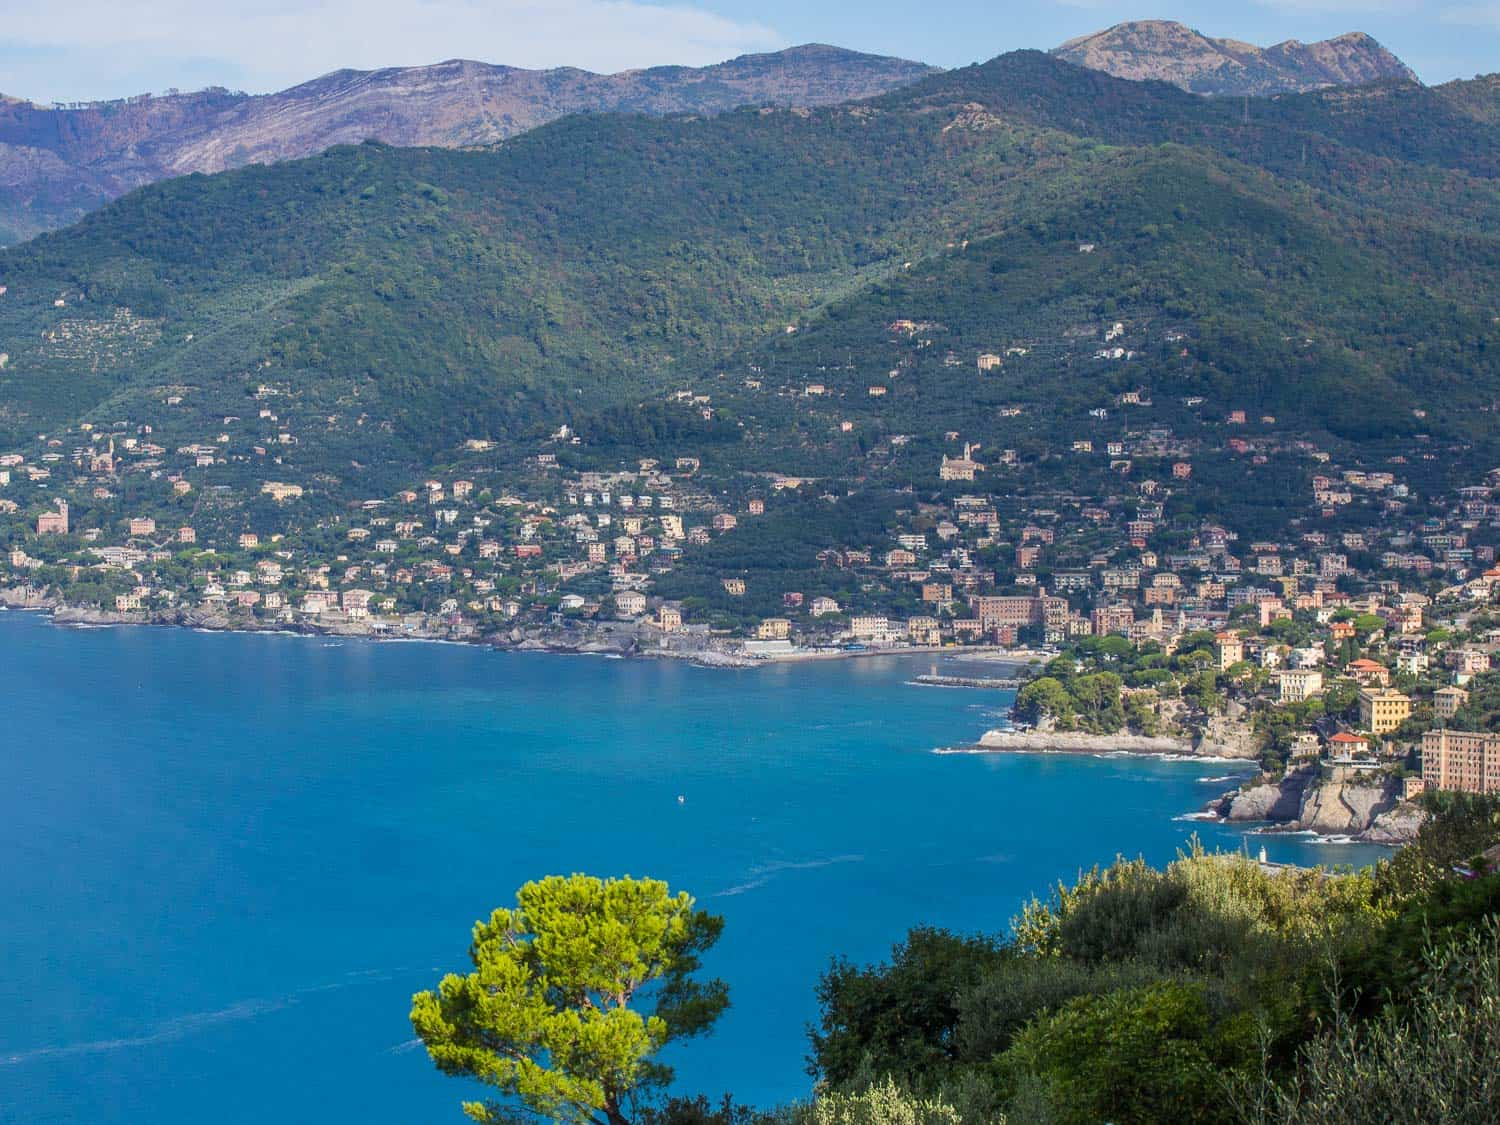 The view from San Rocco, Camogli on the way to San Fruttuoso